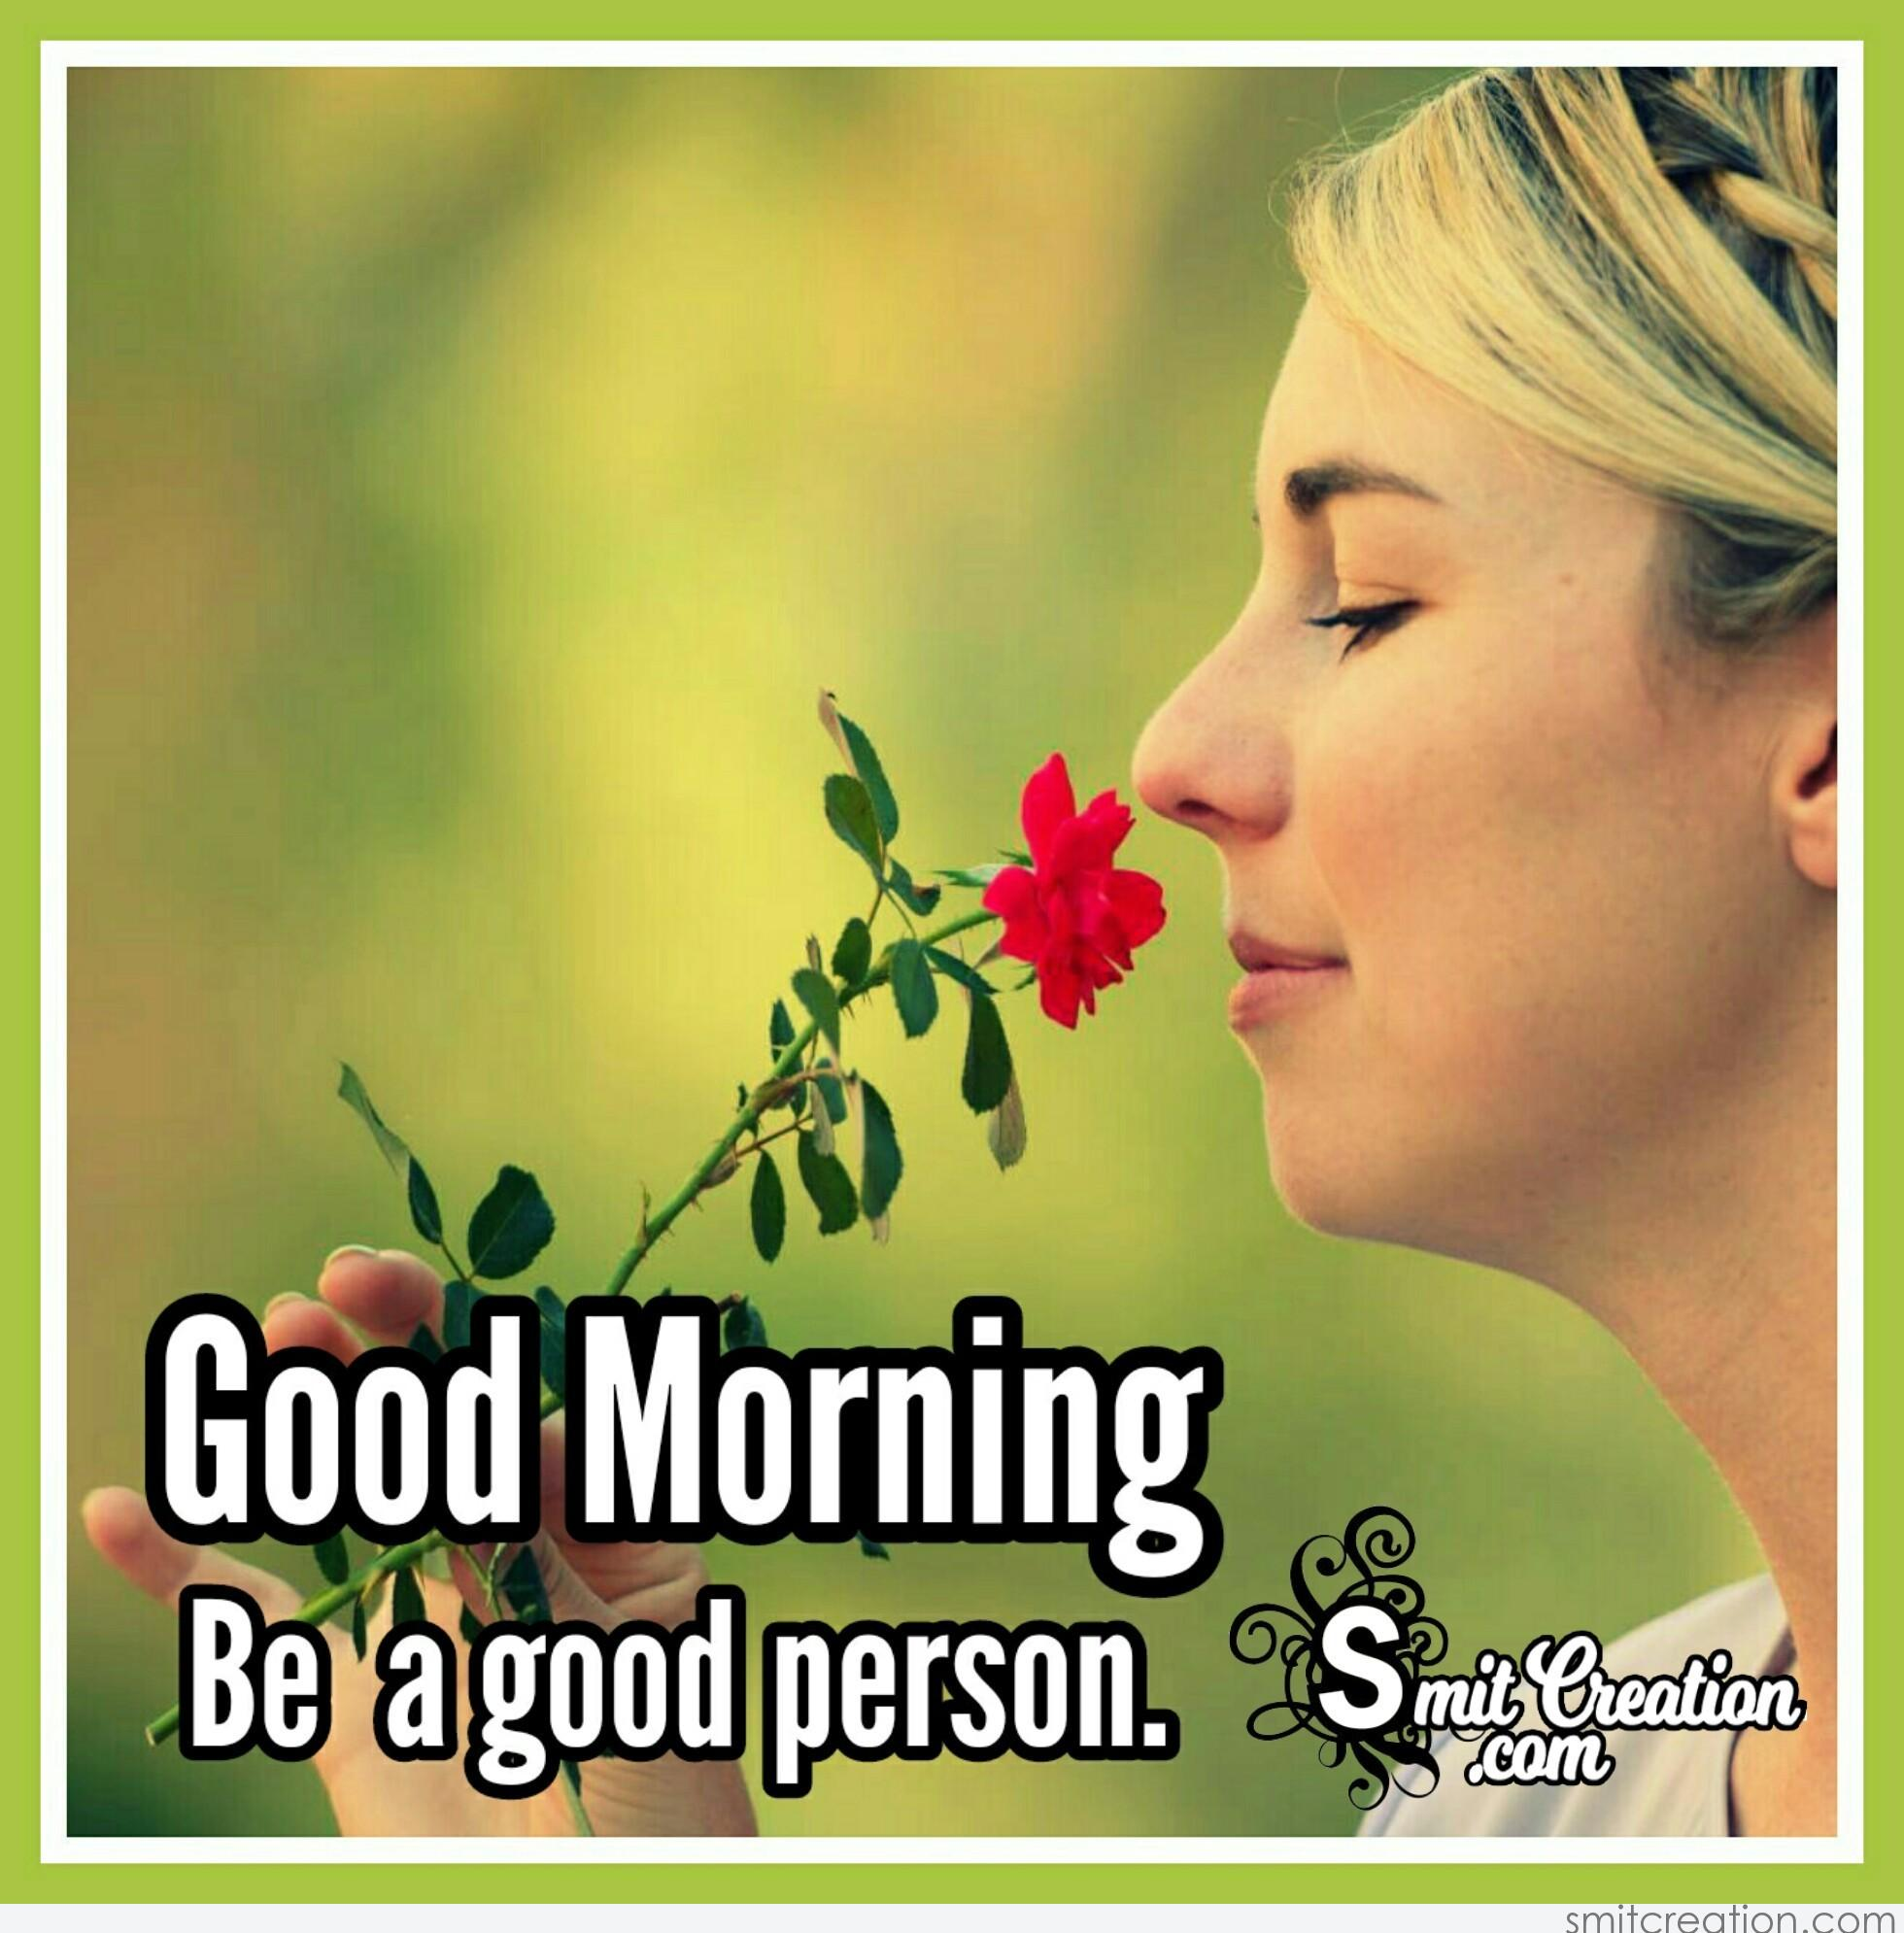 Good Morning Woman Pictures and Graphics - SmitCreation.com